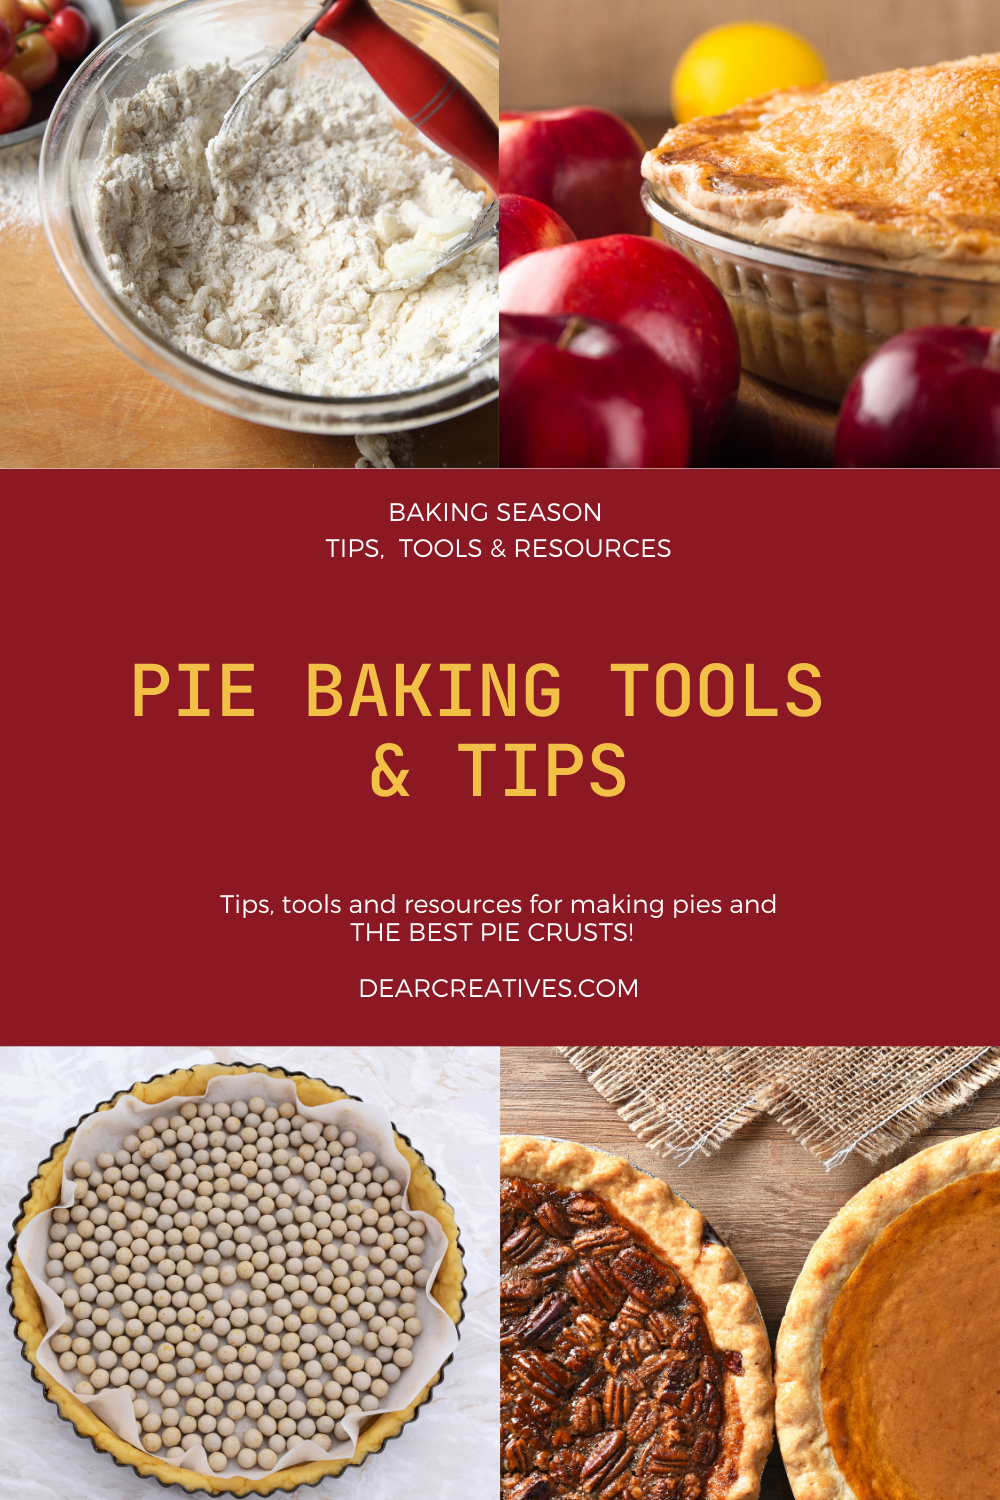 Pie Baking Tools, Tips, And Resources